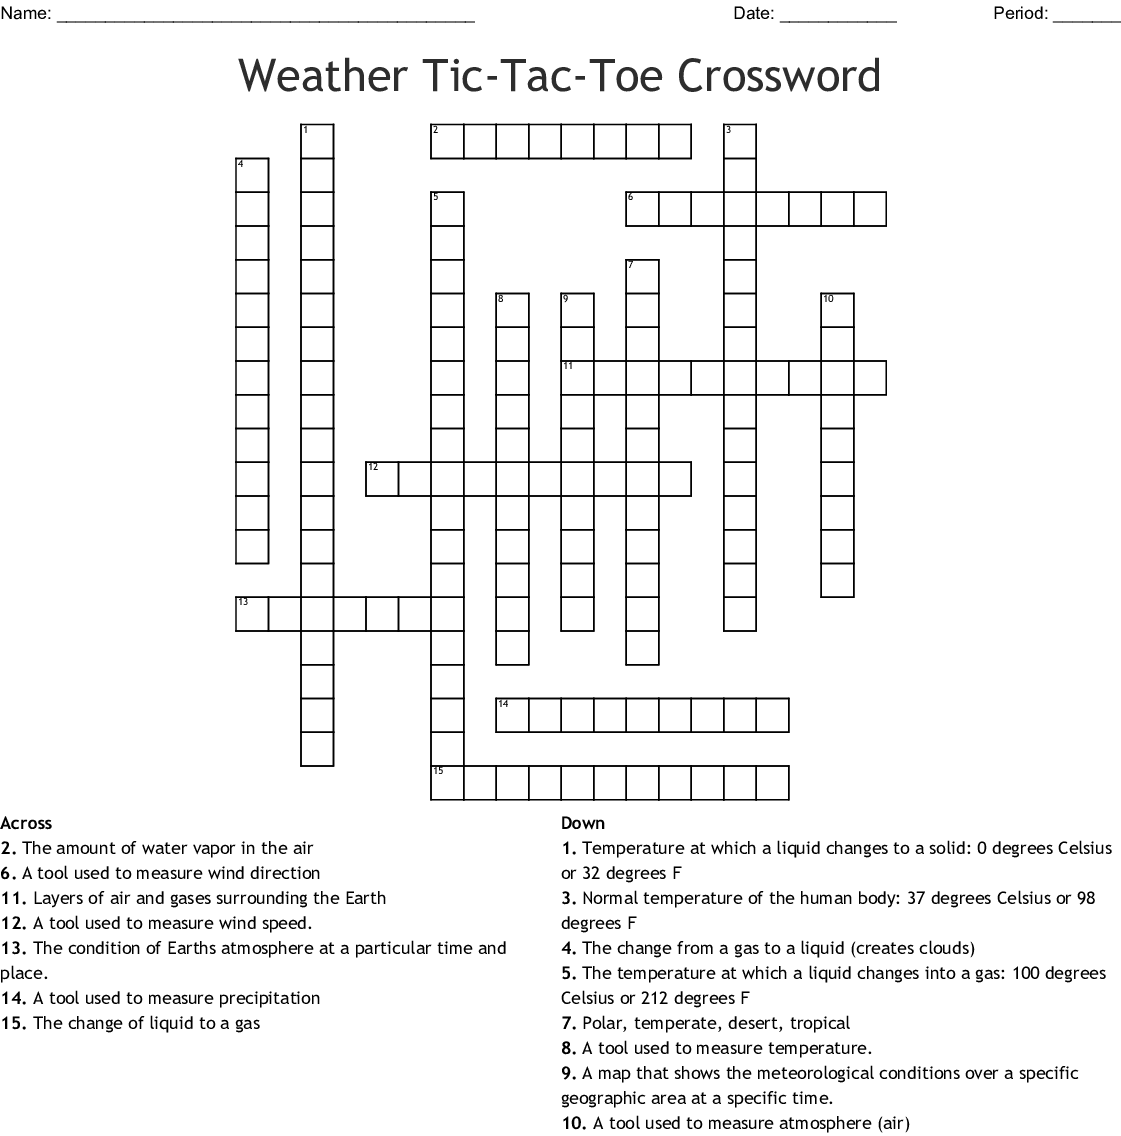 Weather Crossword Puzzle Worksheet Answers